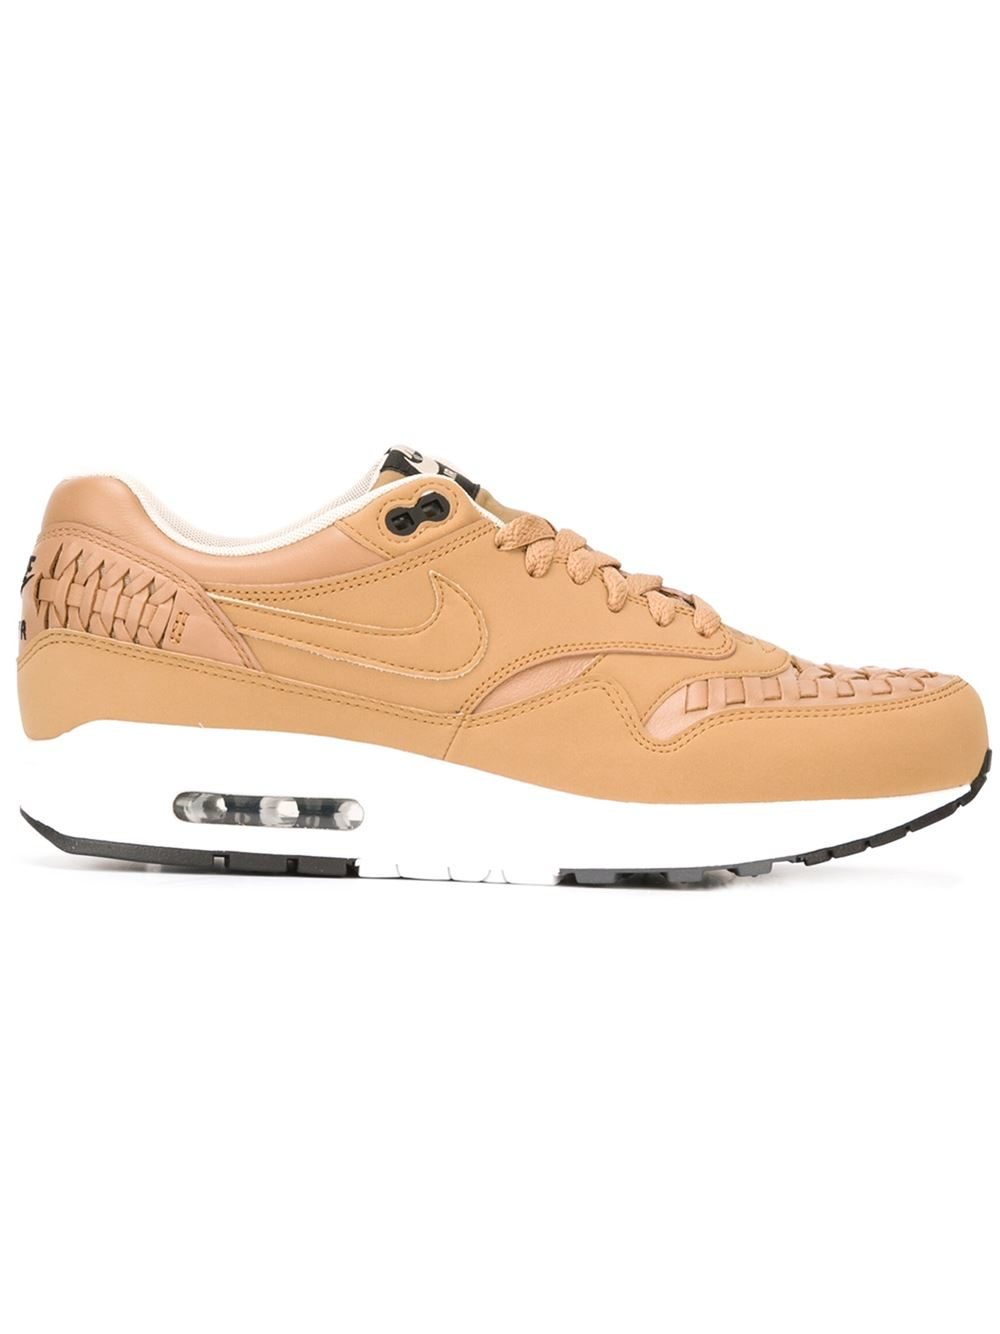 Nike Air Max 1 Sneakers In Beige For Men Nude Amp Neutrals Lyst